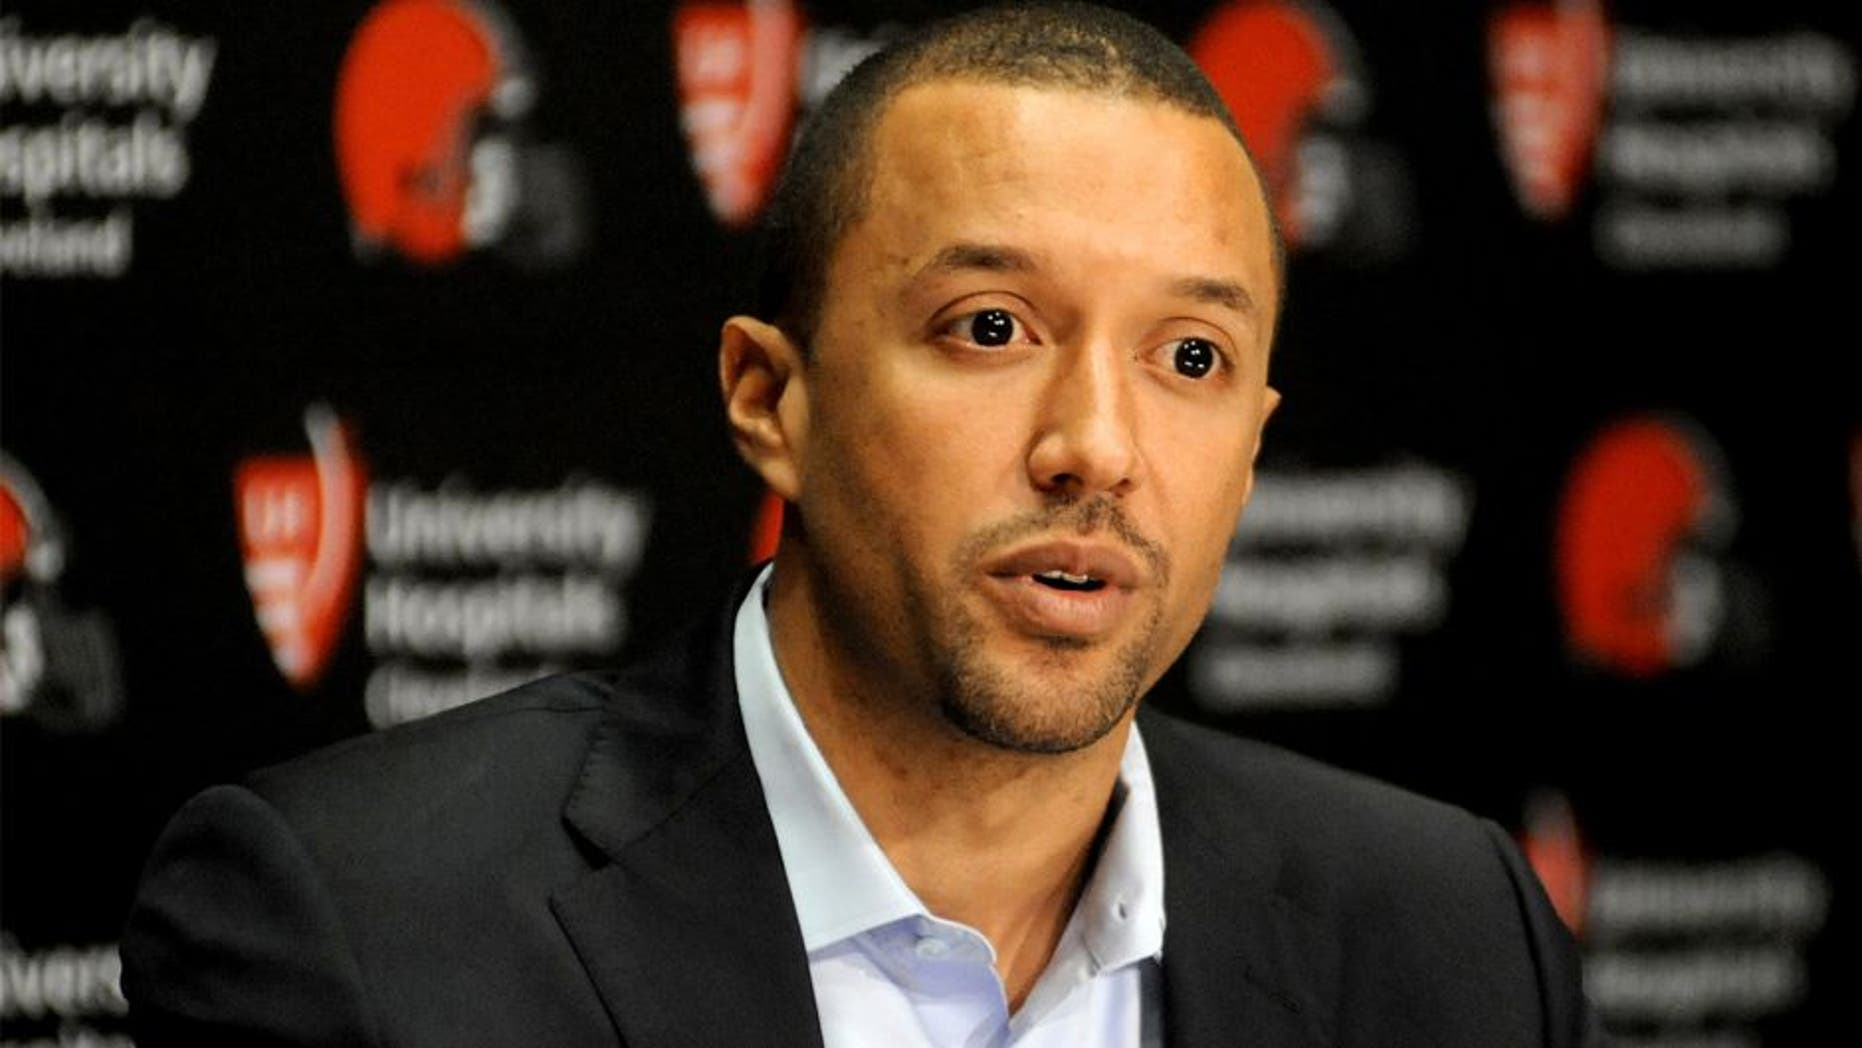 BEREA, OH - JANUARY 21, 2016: Executive vice president of football operations Sashi Brown of the Cleveland Browns answers questions during an introductory press conference on January 21, 2016 at the Cleveland Browns training facility in Berea, Ohio. (Photo by Nick Cammett/Diamond Images/Getty Images)